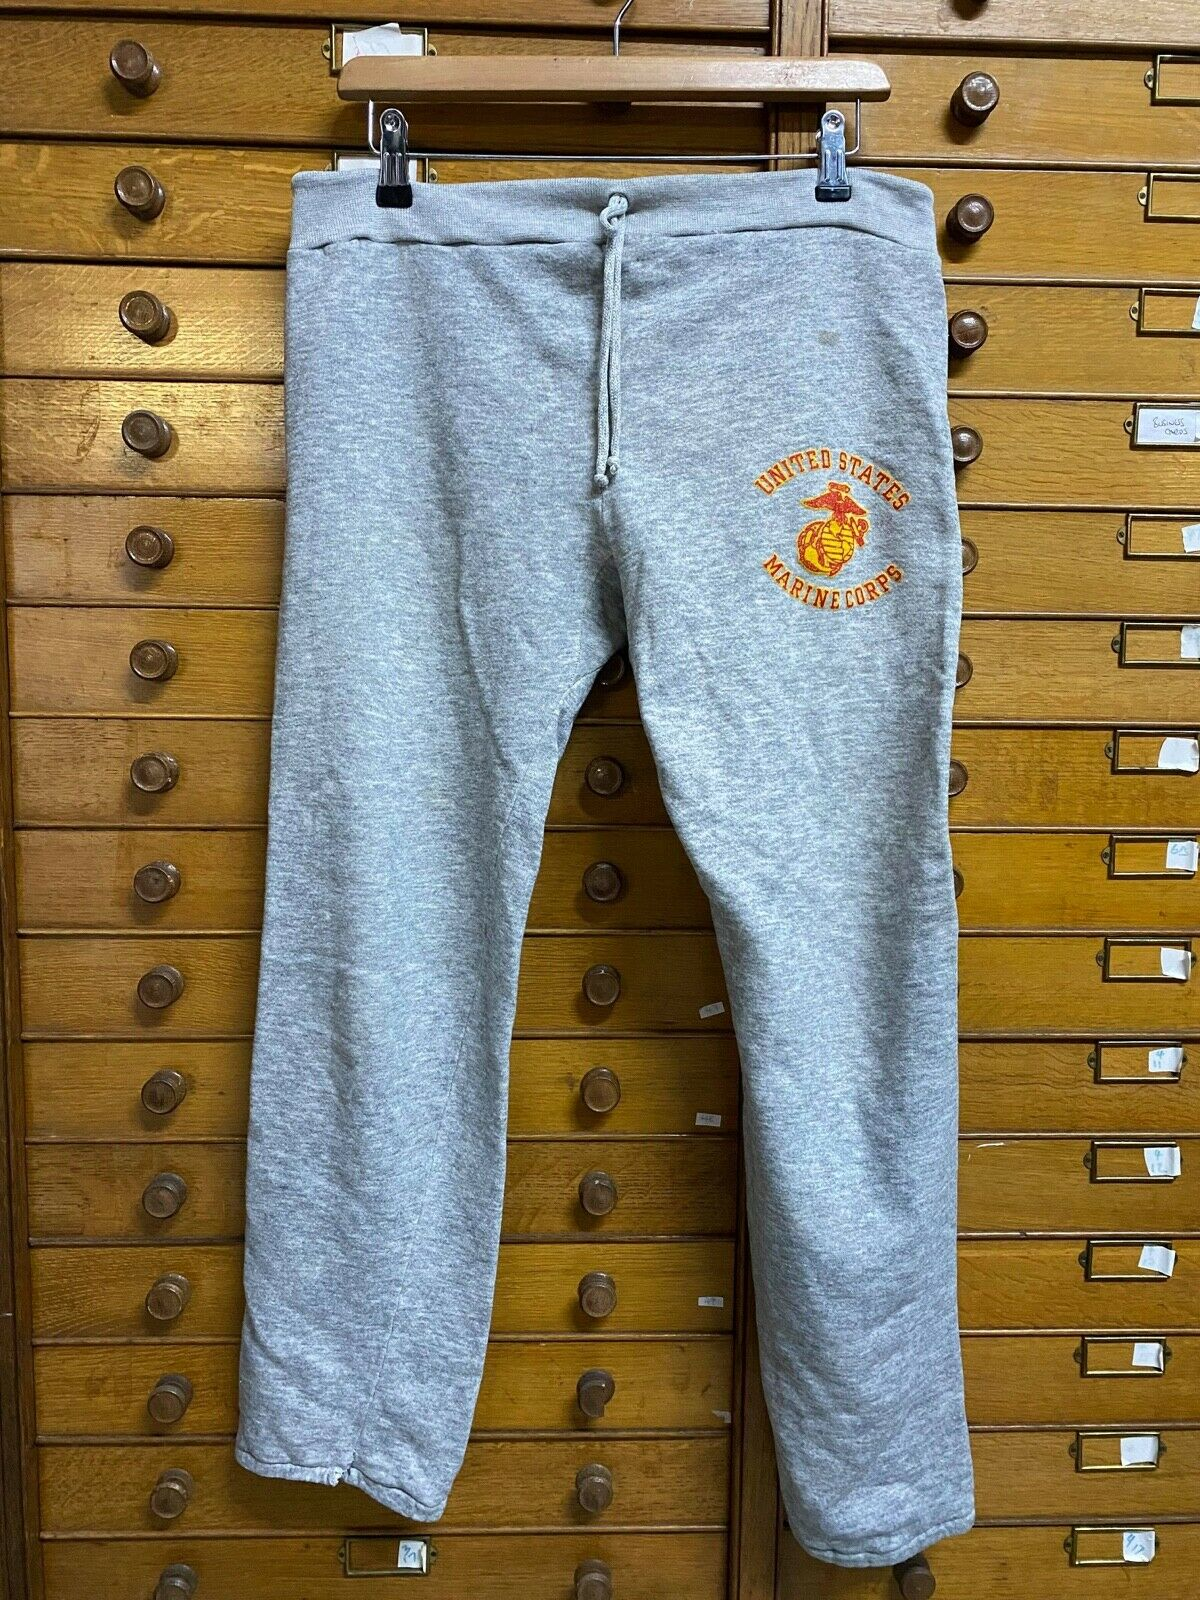 Vintage American United States Marine Corps Military Sweatpants Joggers Trousers